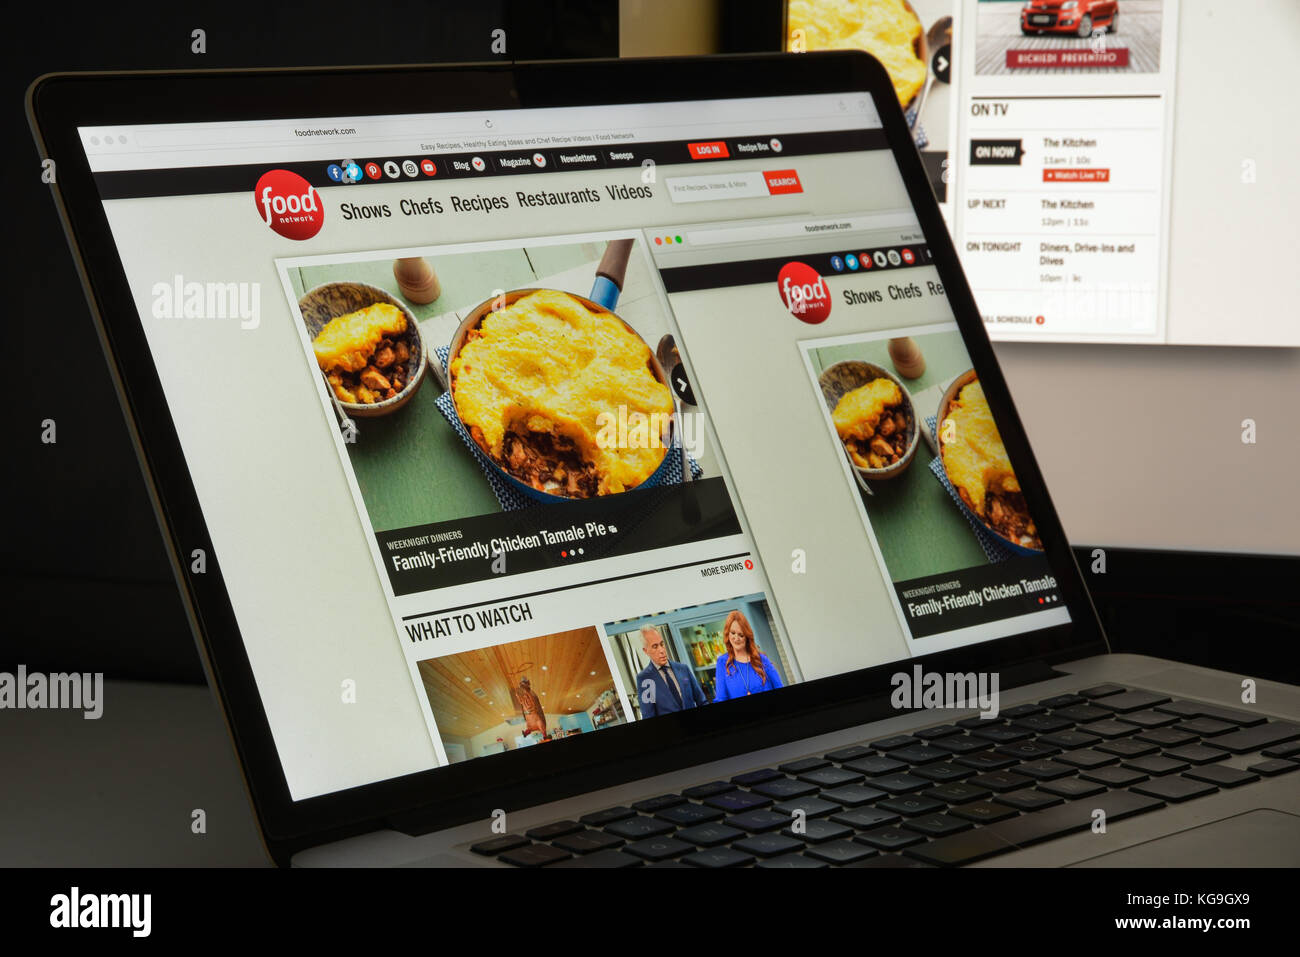 Milan, Italy - August 10, 2017: Foodnetwork website homepage. It is an American basic cable and satellite television - Stock Image